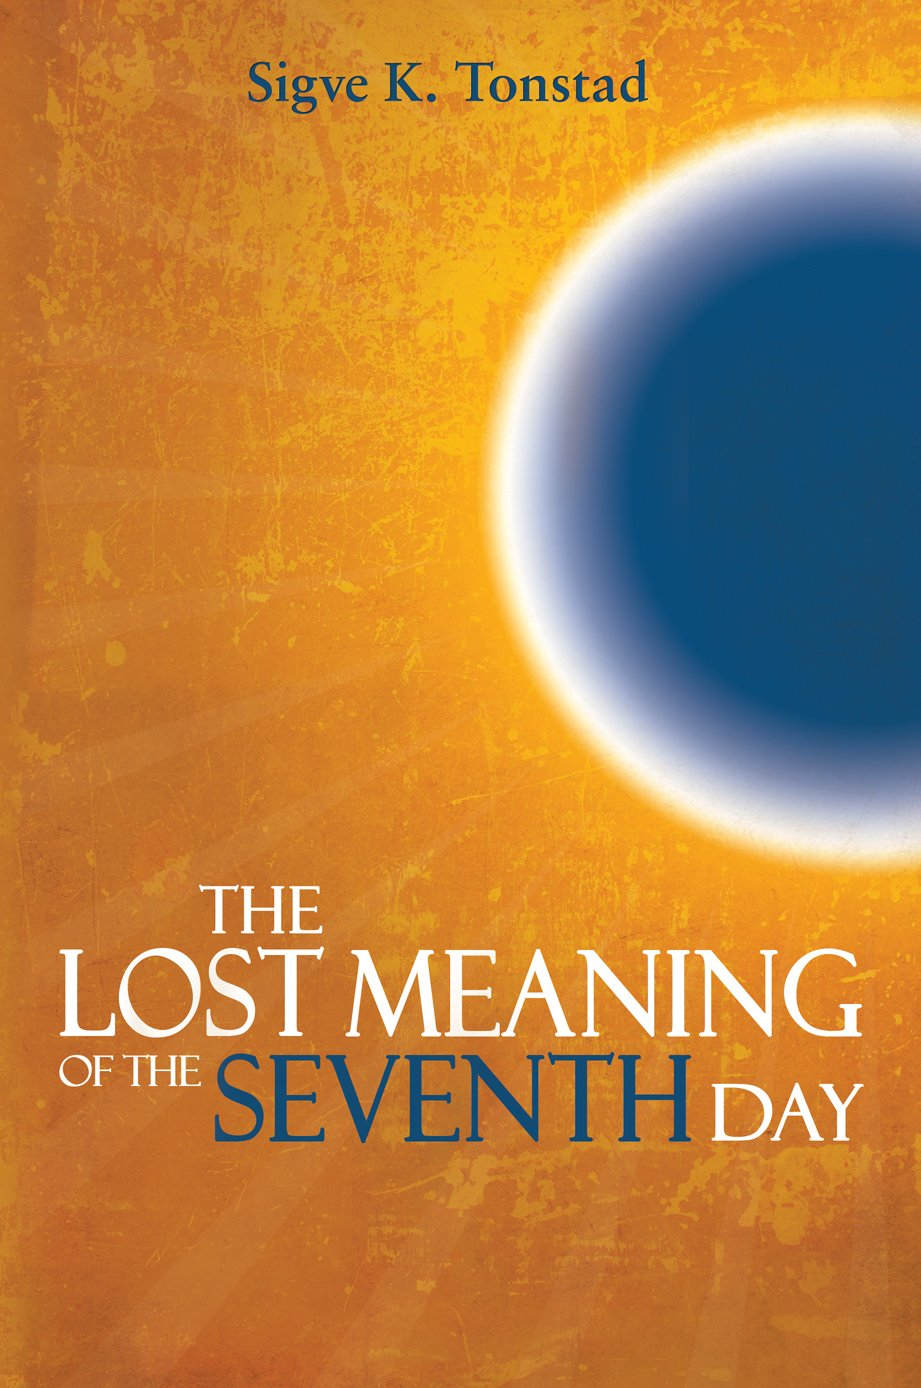 The Lost Meaning Of The Seventh Day Sigve K Tonstad 9781883925659